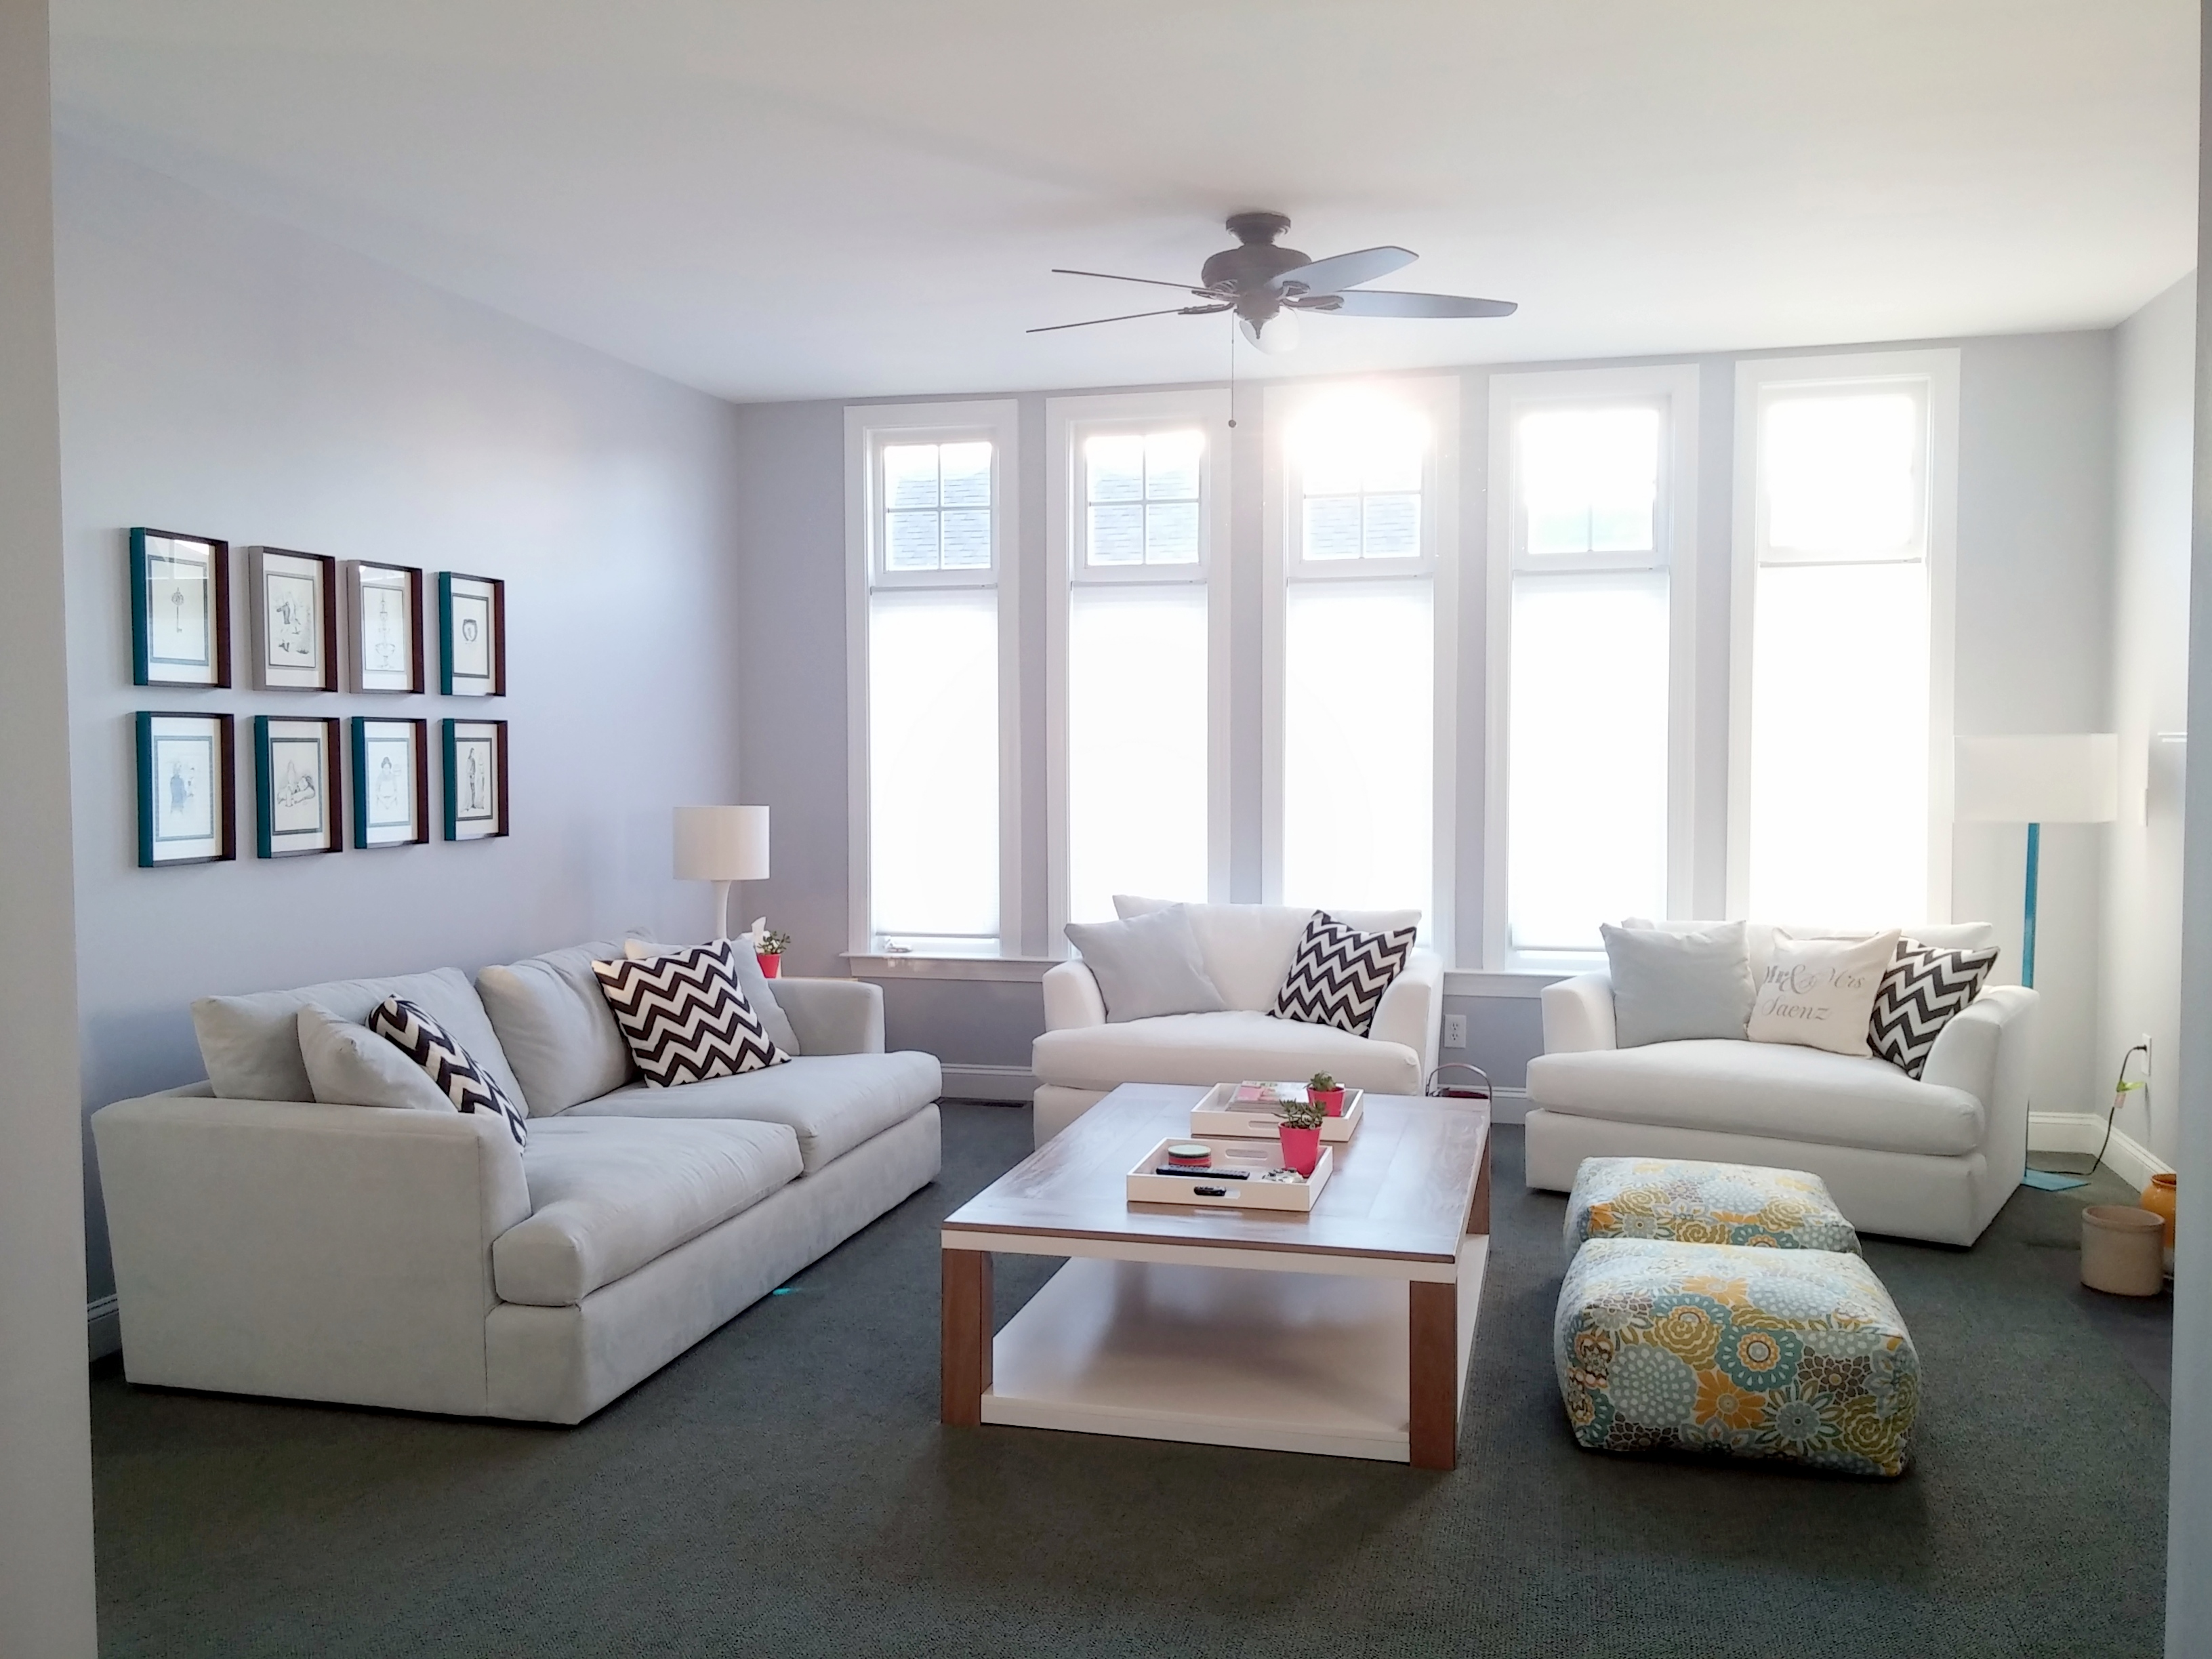 Our Living Room Transformation Design By Saenz